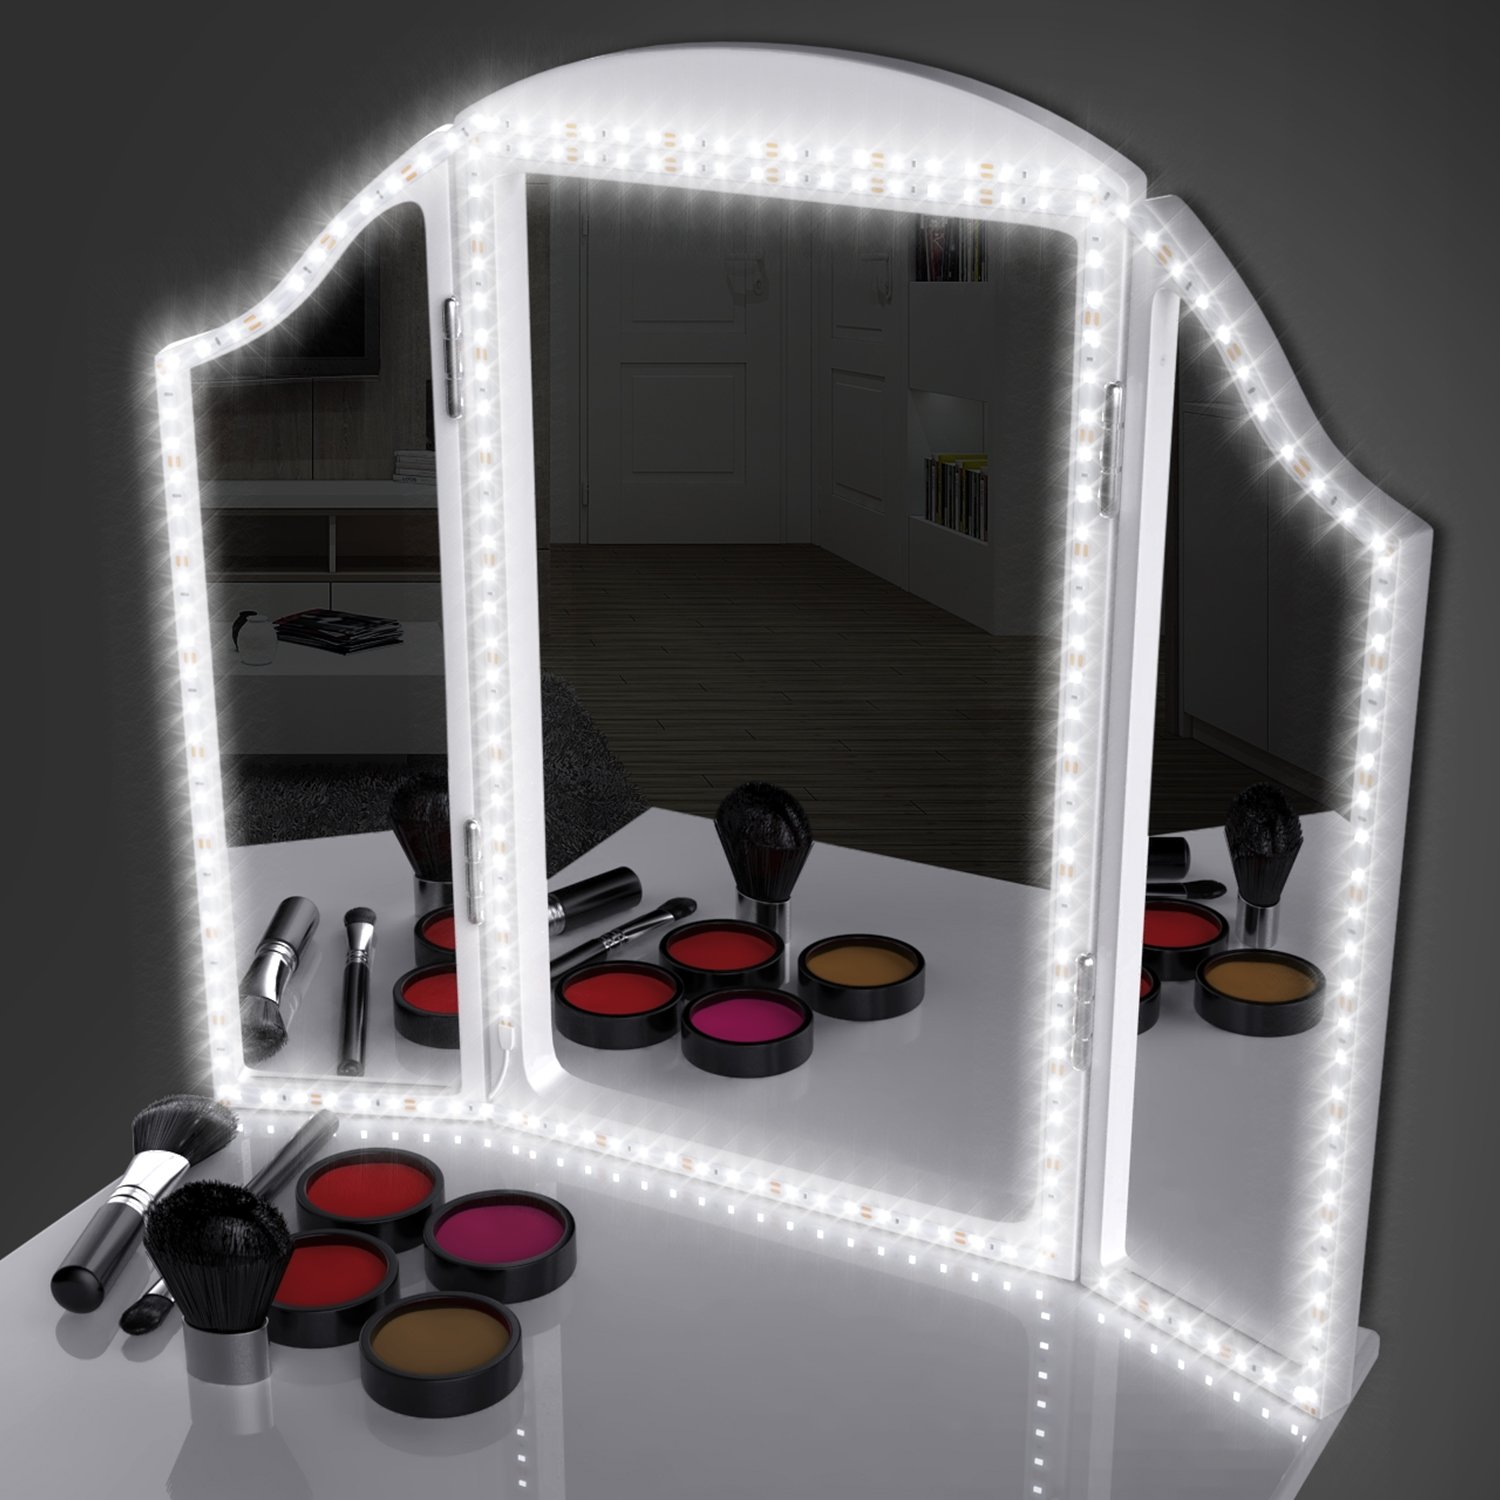 LED Mirror Lights Kit for Makeup, 13ft/4M 240 LEDs Make-up Light Strip for Vanity Table with Dimmer and Power Supply, 6000K Daylight Glow - Mirror not Included